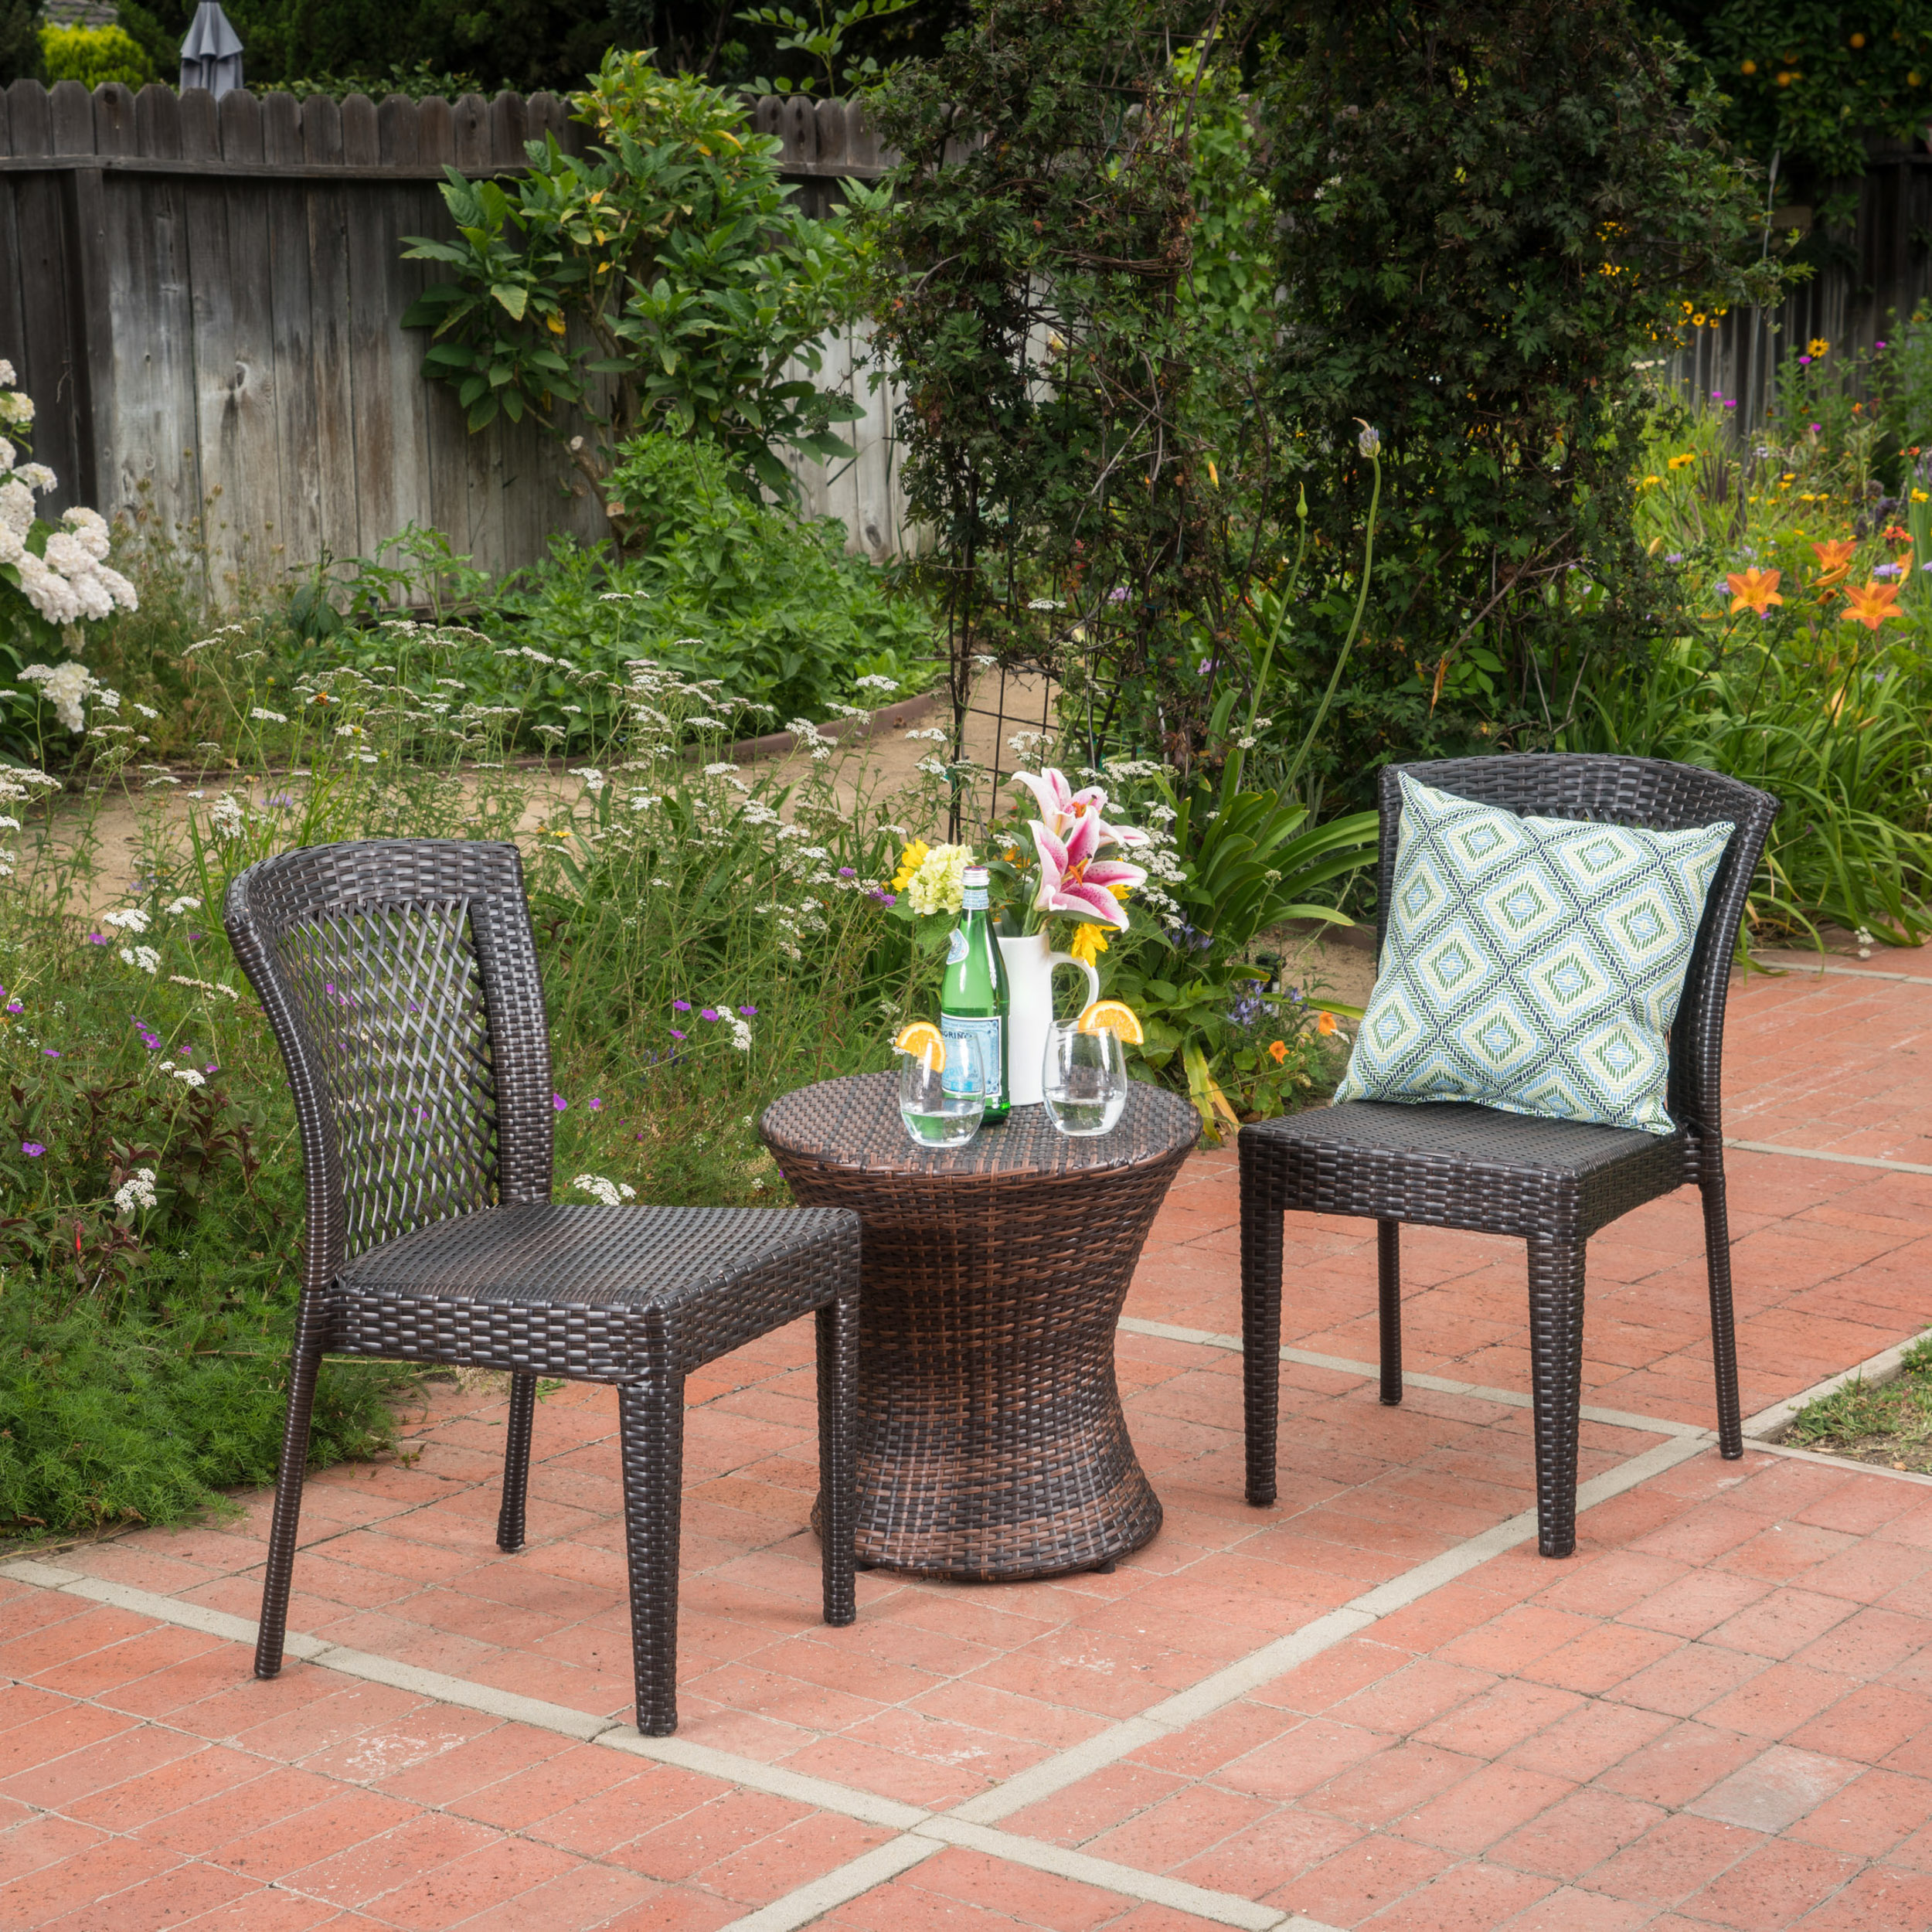 Talia Outdoor 3 Piece Wicker Stacking Chair Chat Set, Multibrown